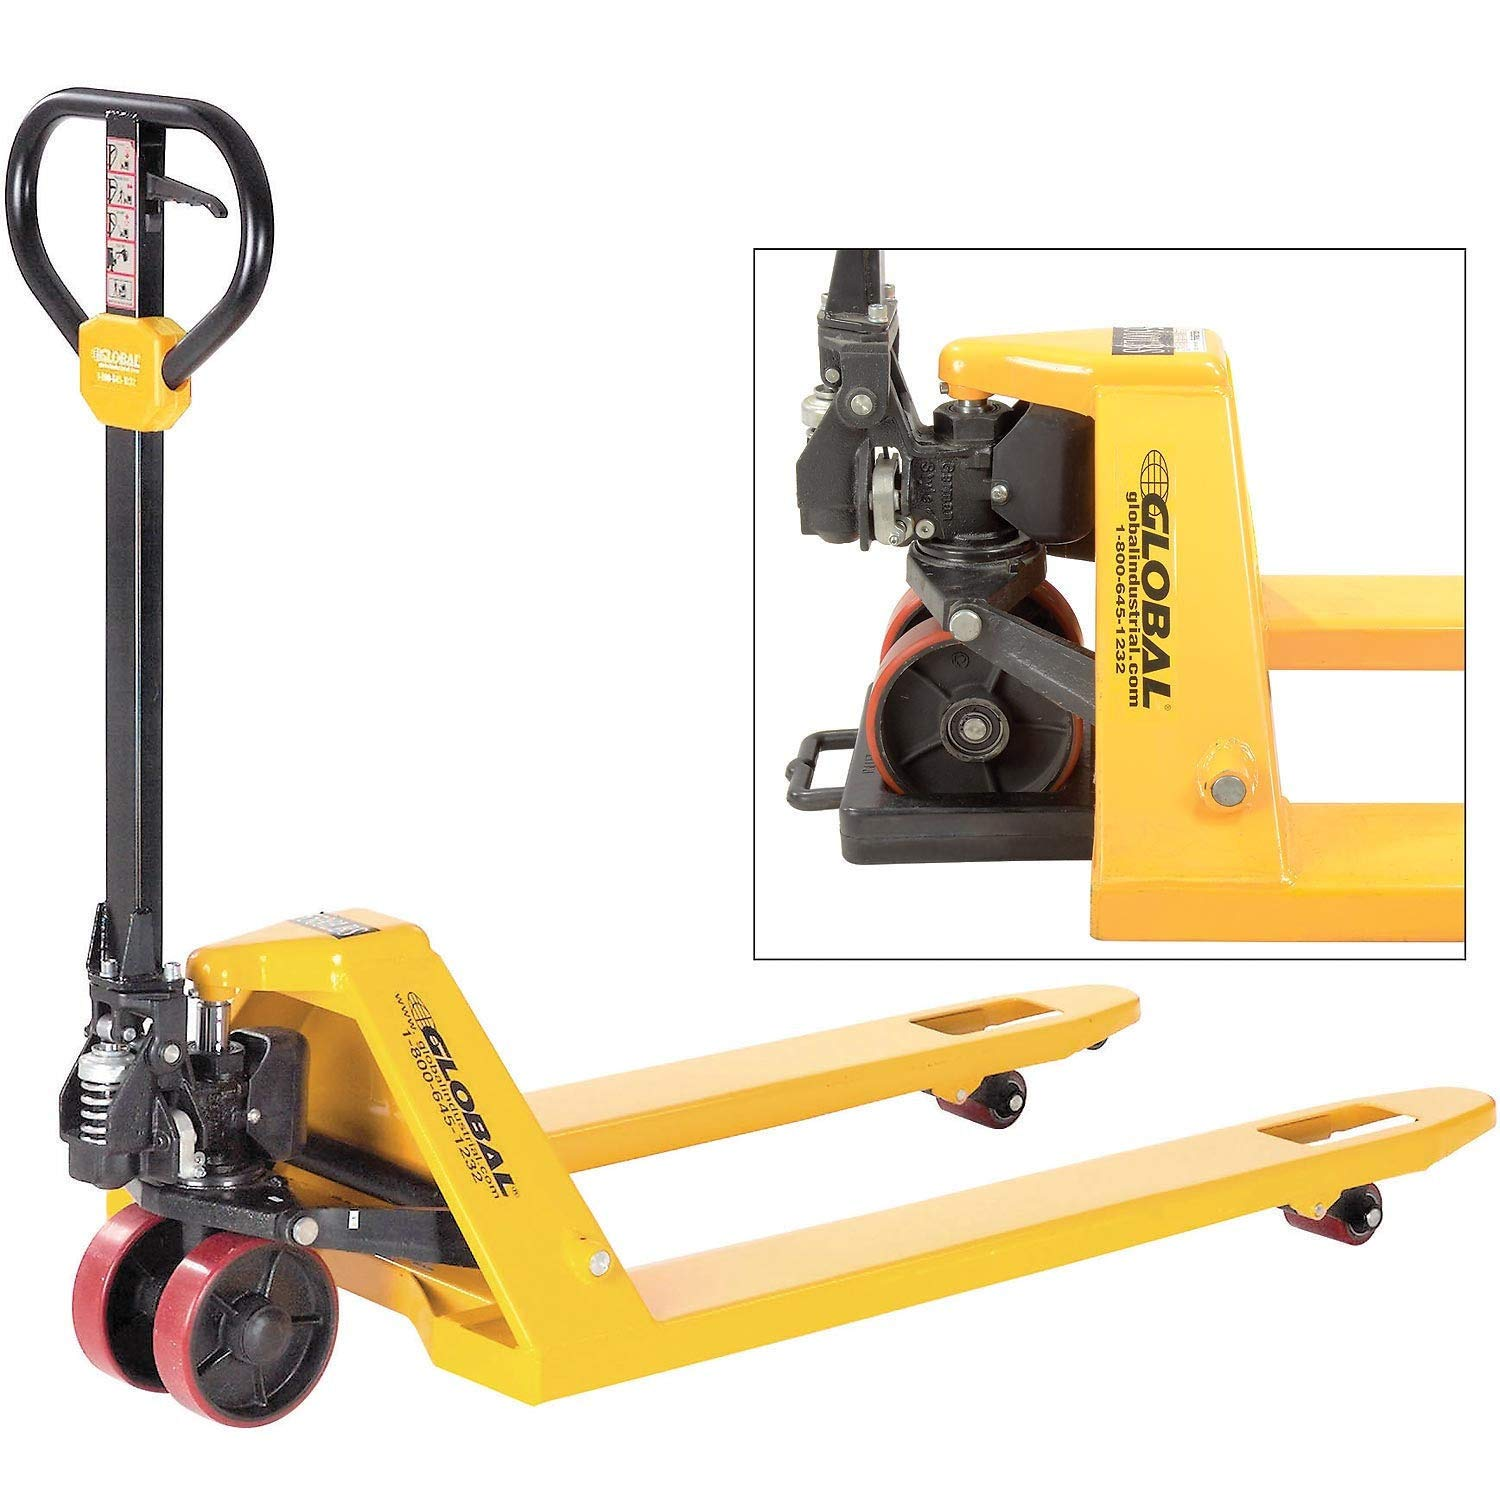 Pallet Jack Truck, 5500 Lb. Capacity, 21 x 36 & Pallet Chock Combo